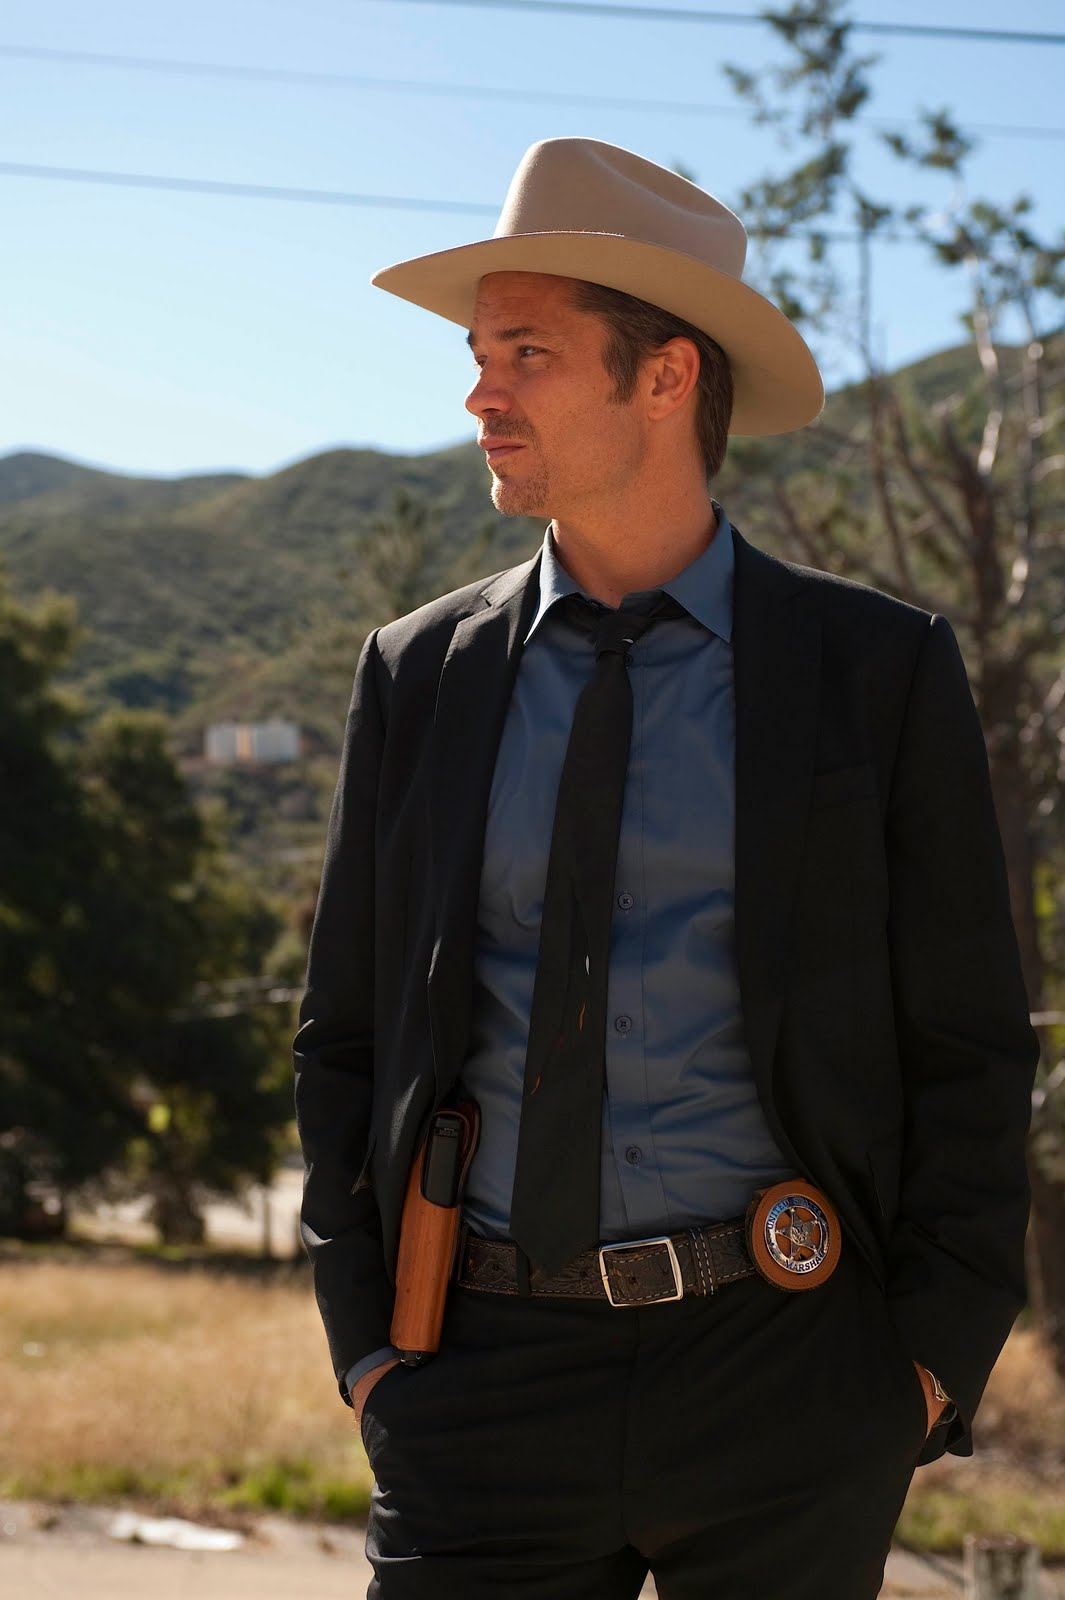 d91fdbeaafb92 It s a great hat and it looks good on him. From another blog I read  (http   justified.blogs.fxnetworks.com 2010 03 16 wardrobe-for-raylan-givens )